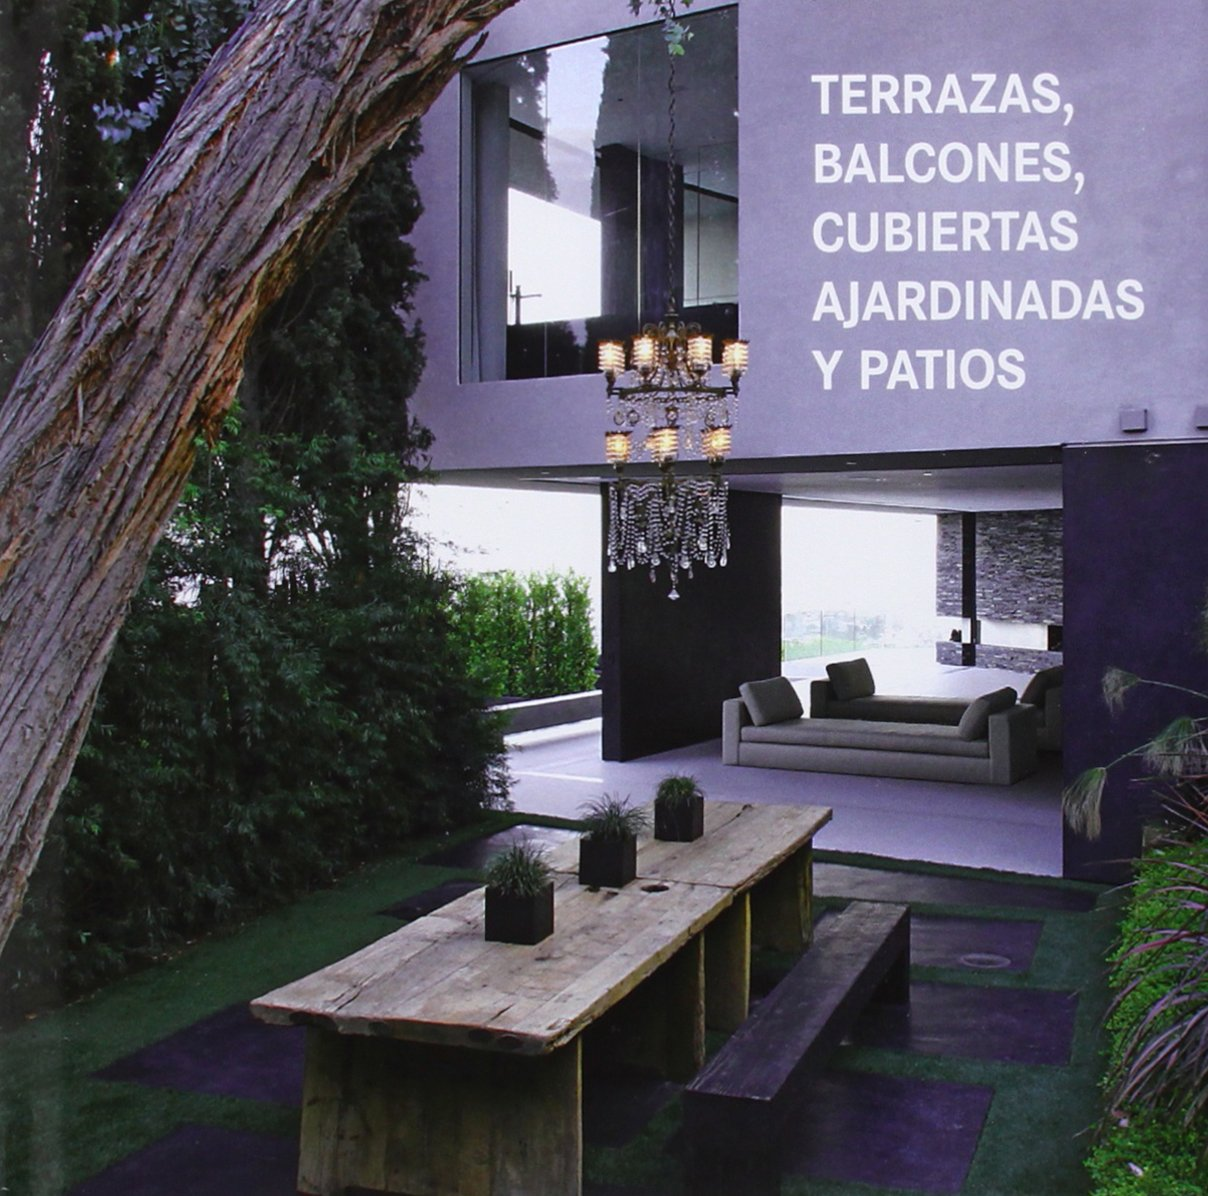 Terrazas Balcones Cubiertas Ajardinadas y Patios / Terraces, Balconies, Roof Gardens & Patios (Multilingual Edition)